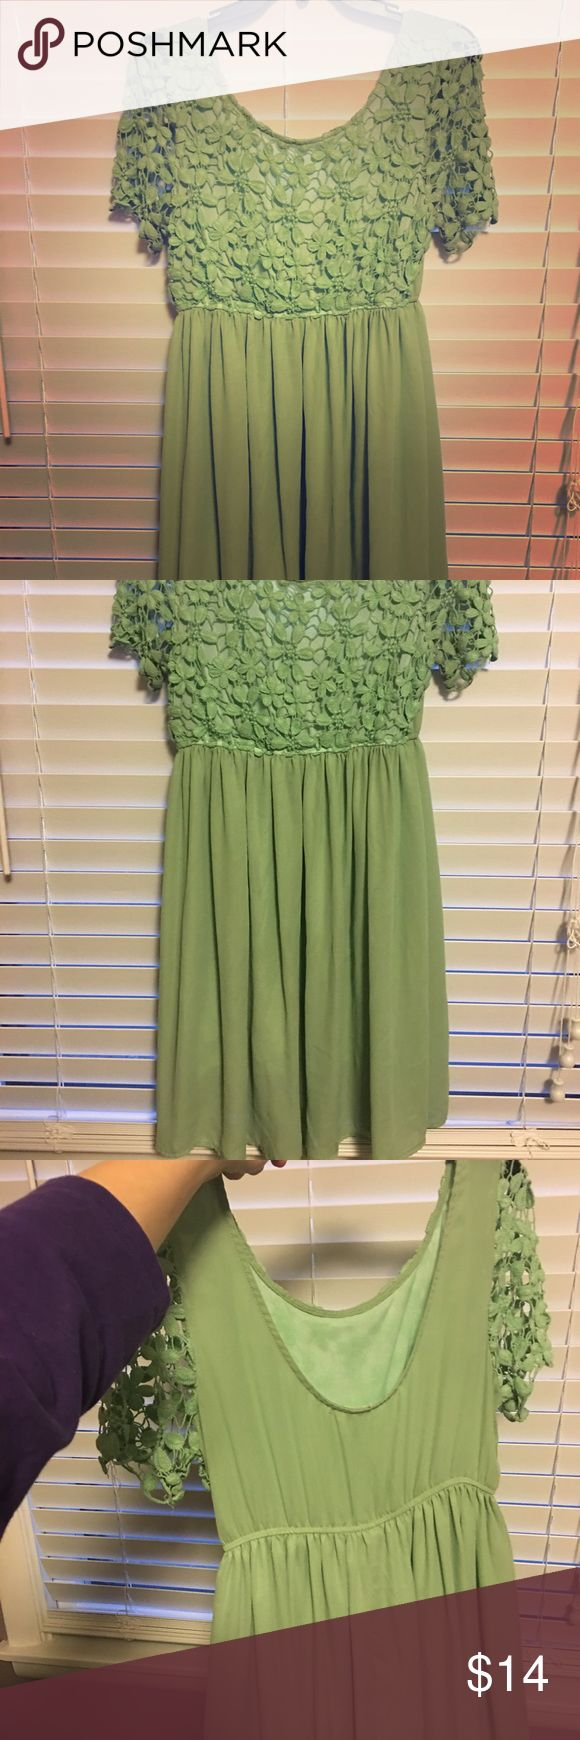 Mint green dress Lace sleeve with scooped back. Size not shown but fits a small-medium Dresses